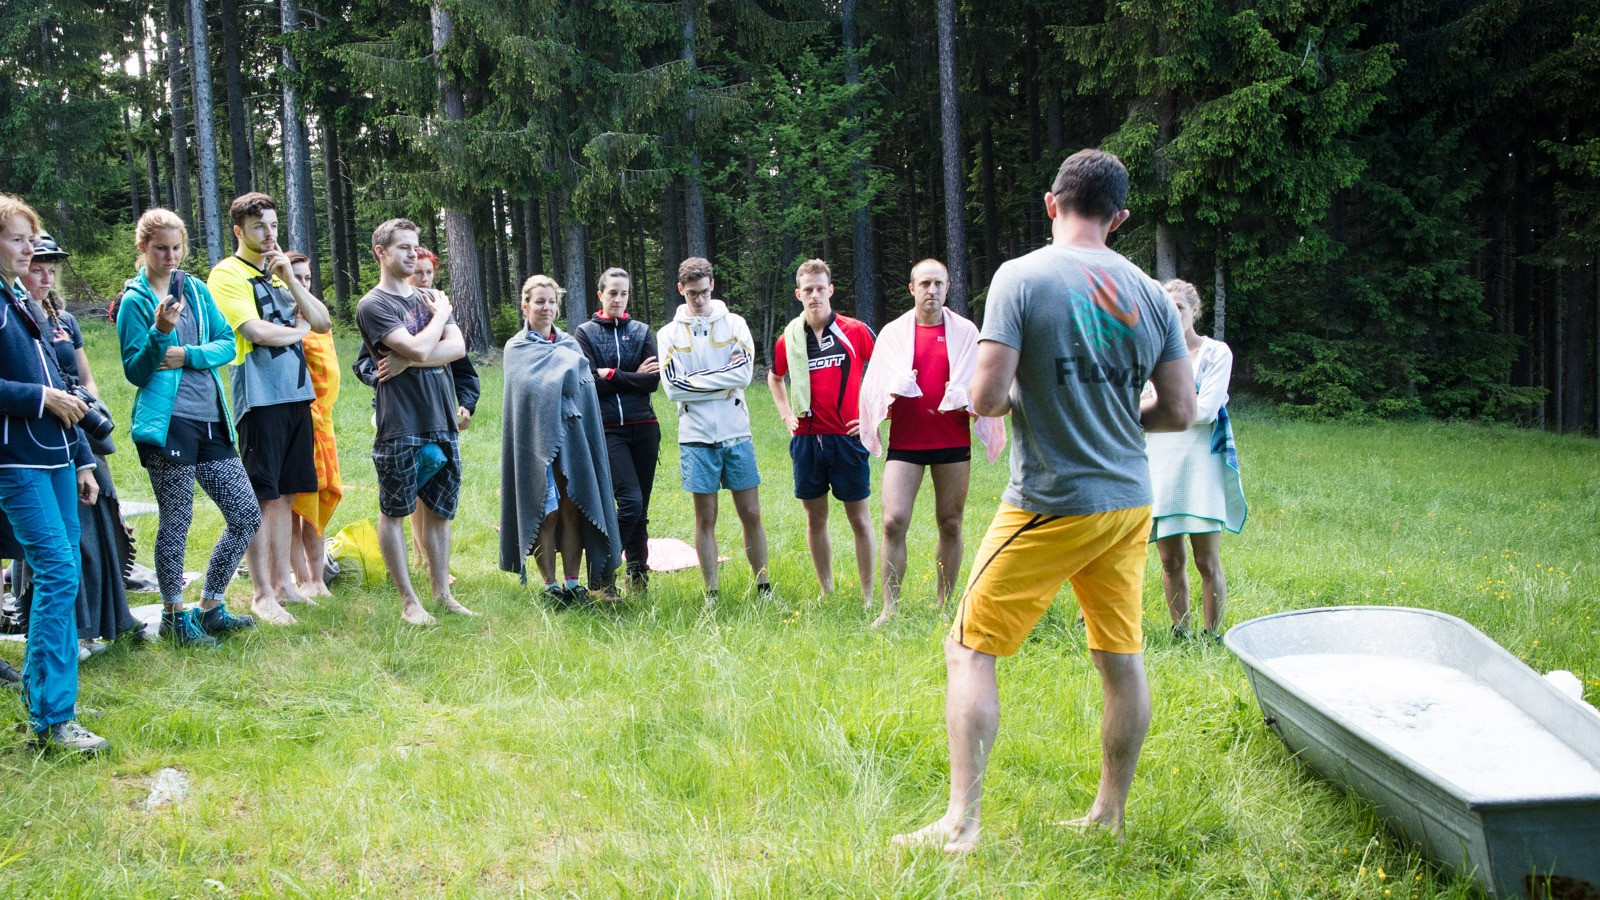 Image 3 of 4 - Experience Ice Bath to get an impression of WHM Fundamentals Workshop at Wiener Neustadt